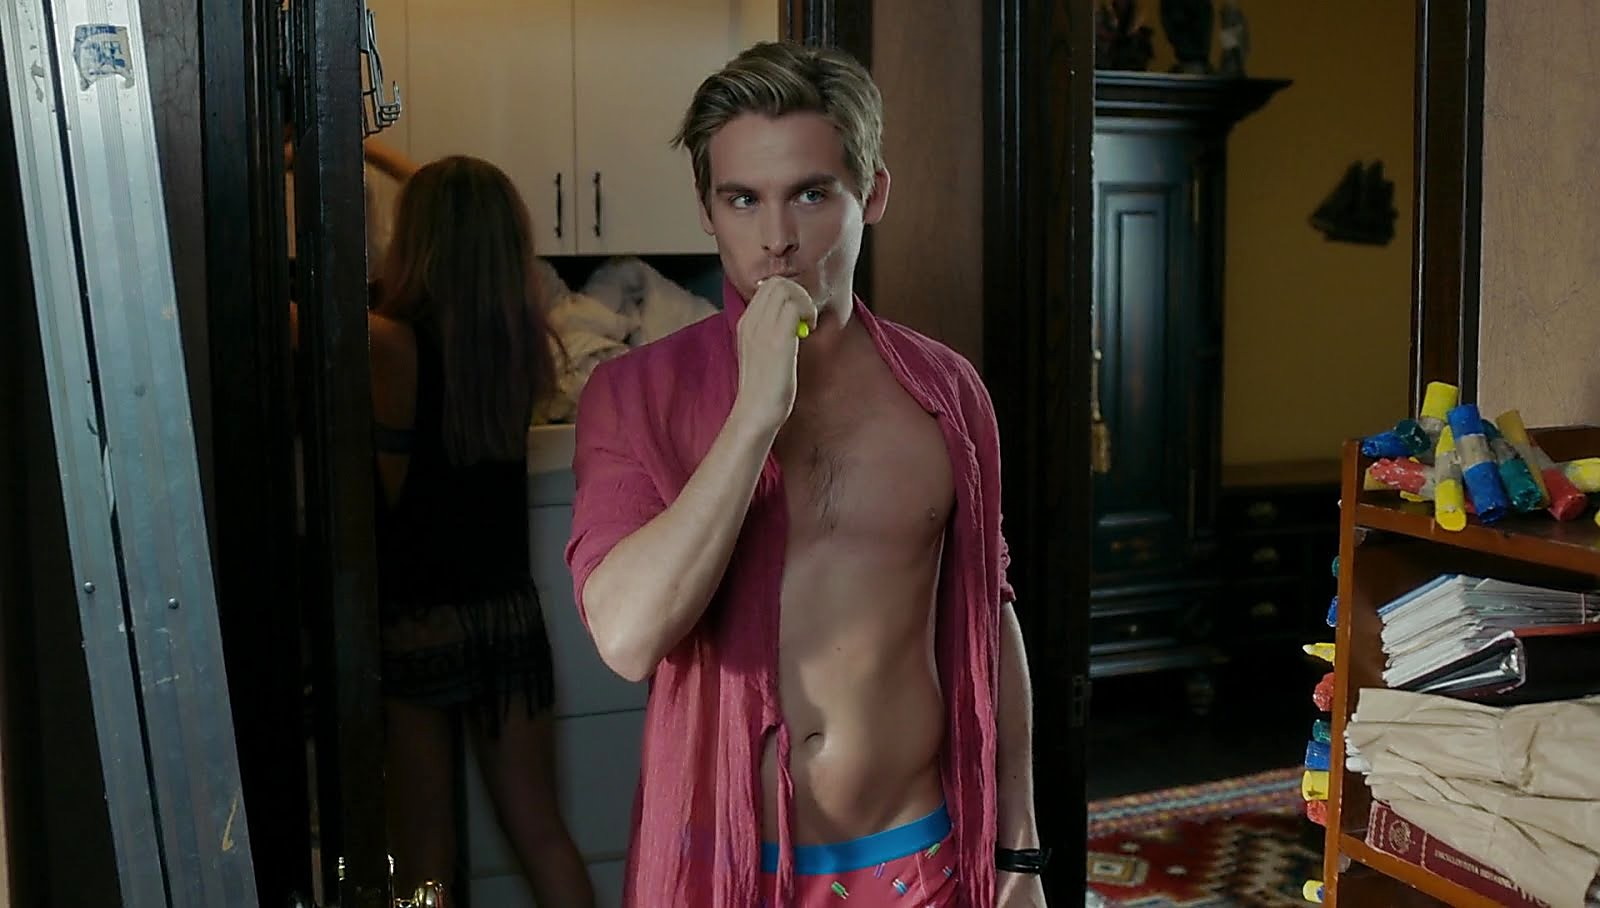 Kevin Zegers sexy shirtless scene May 15, 2018, 9am